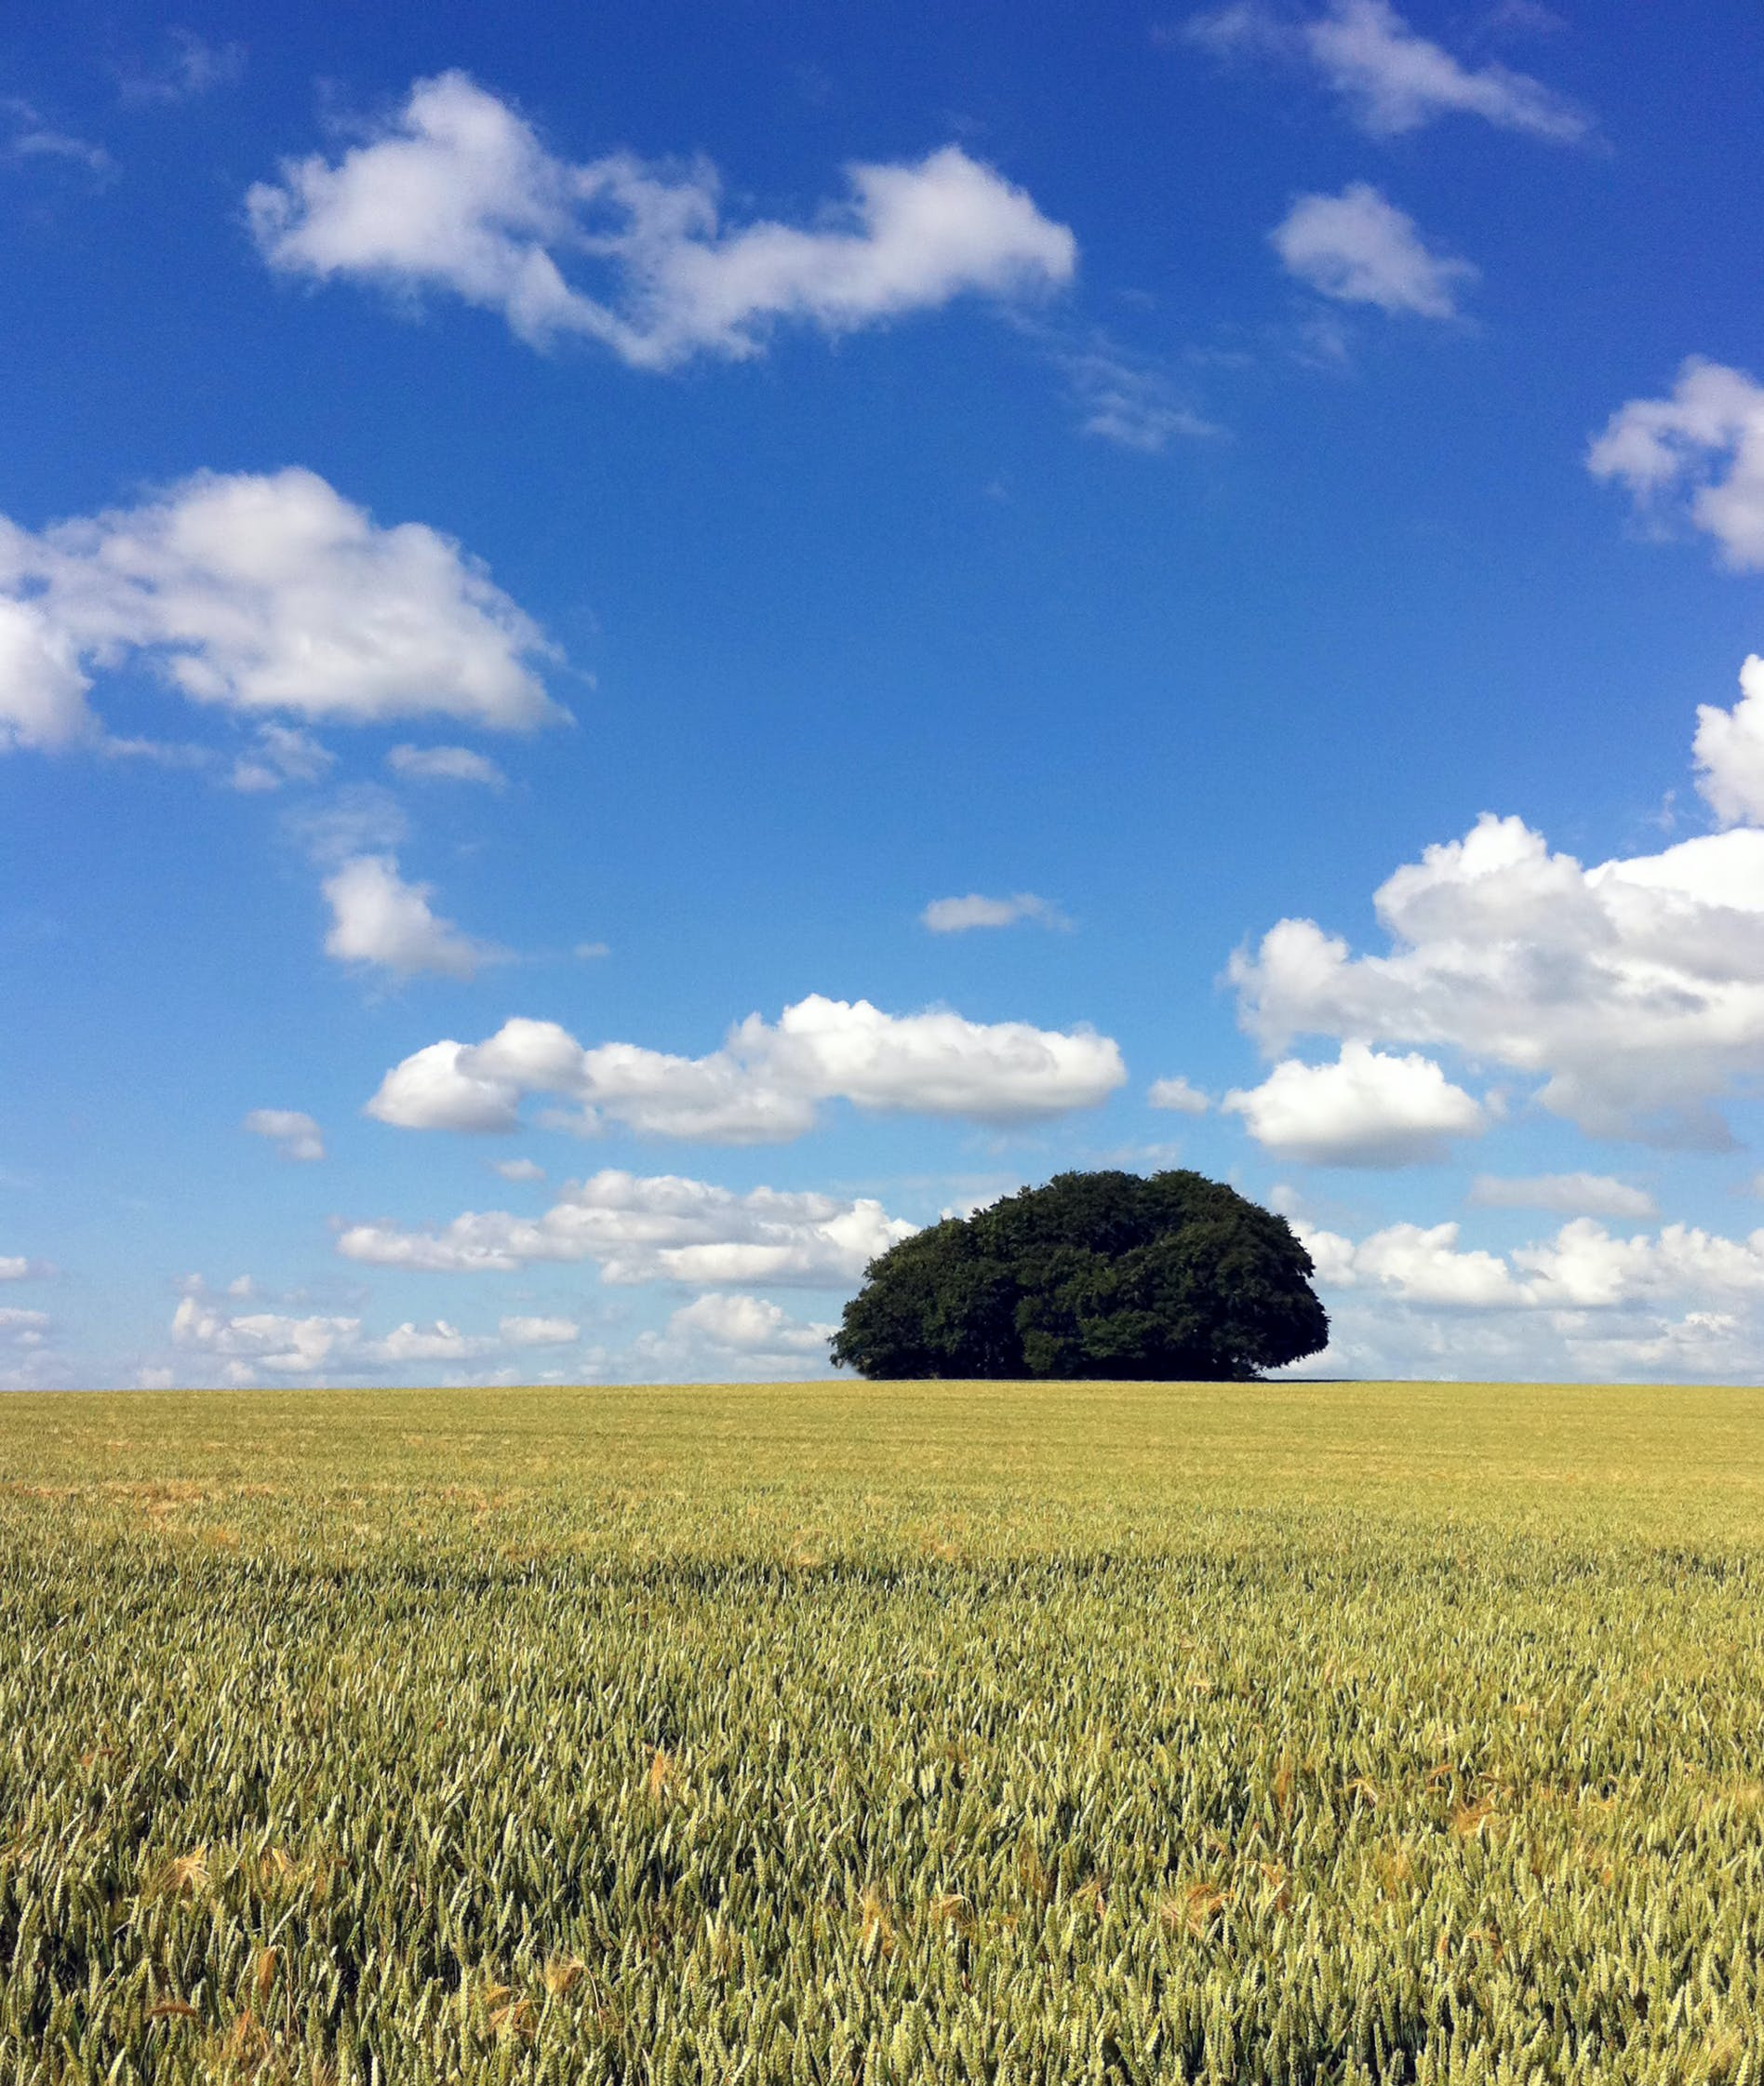 Green Leaf Tree and Grass Field Under Blue Sky and White Clouds